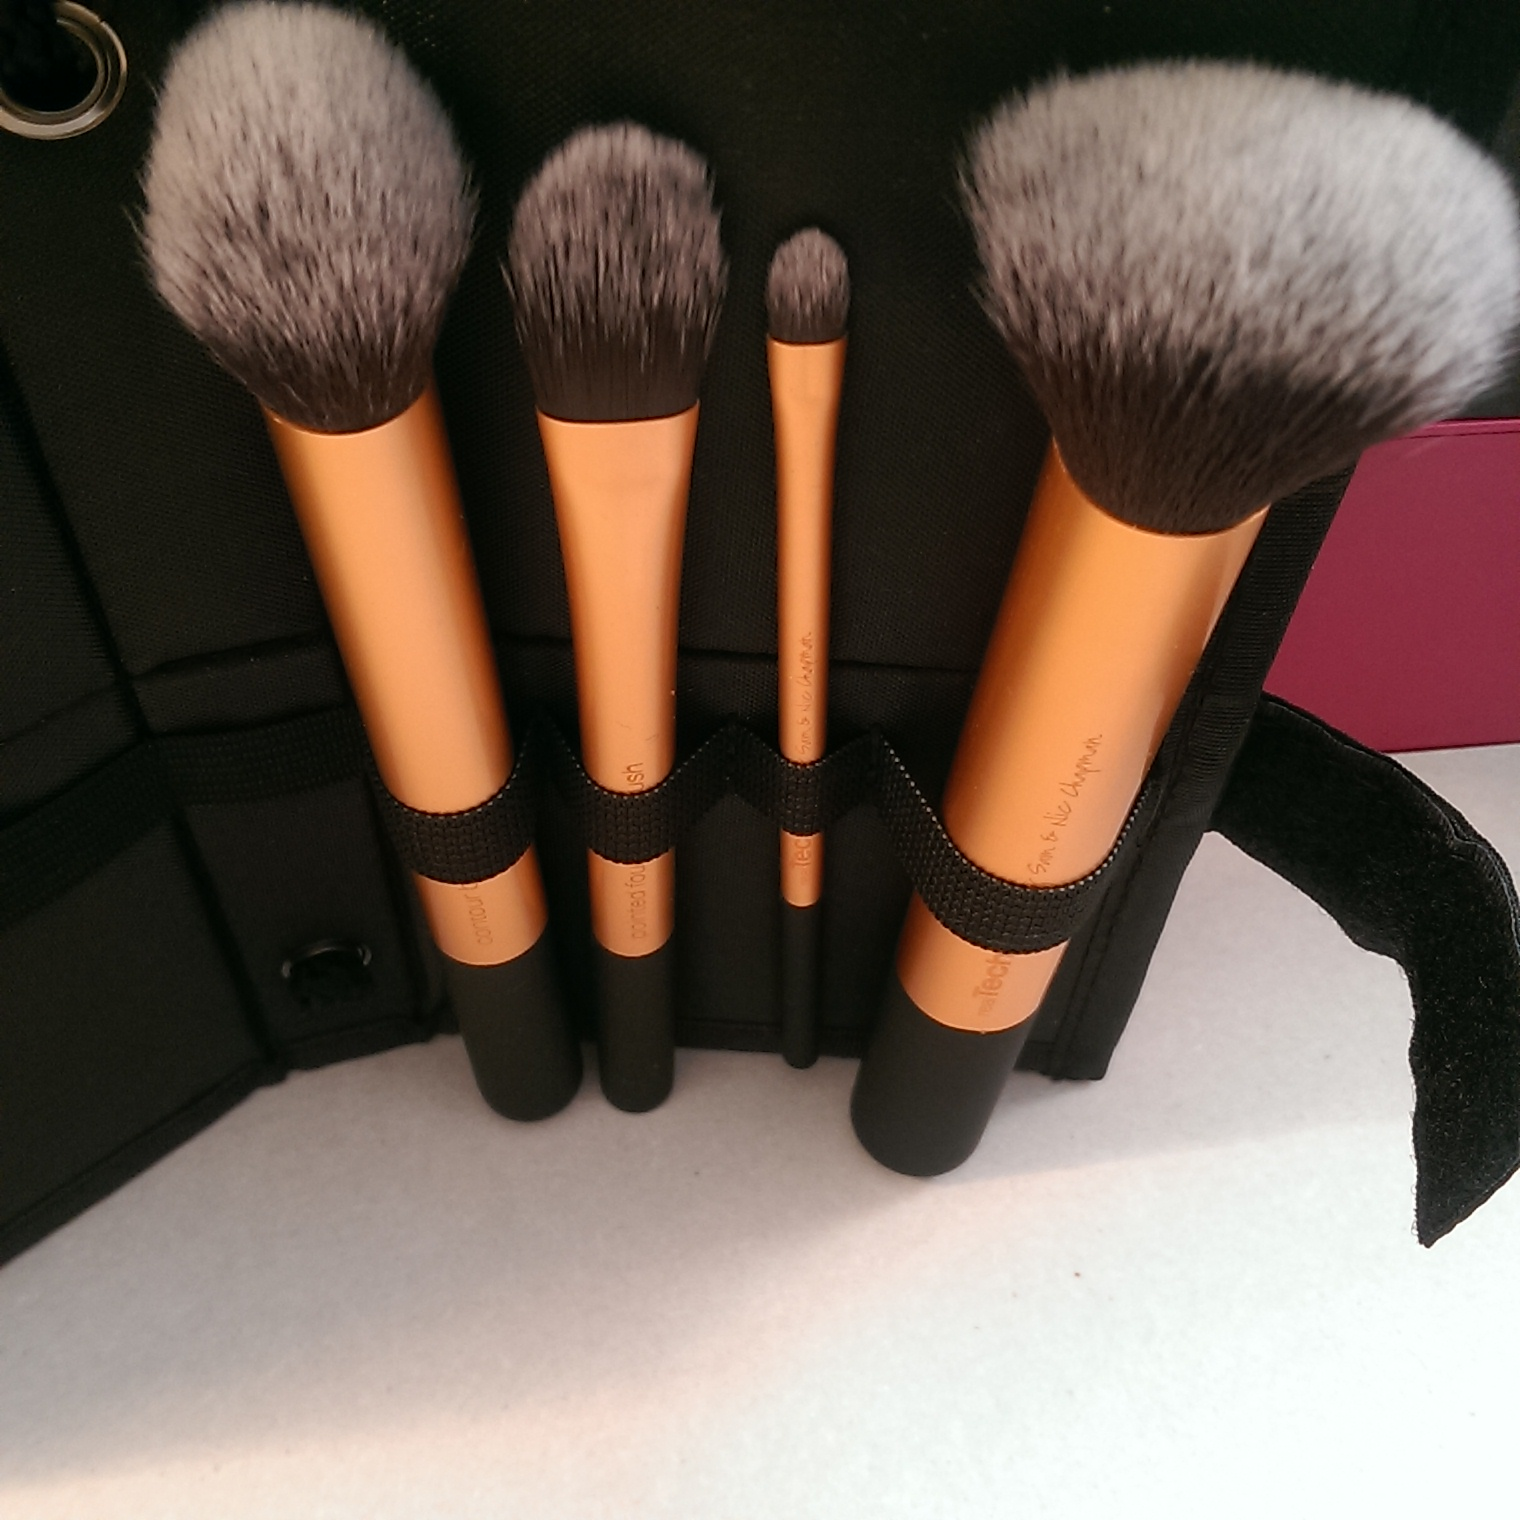 Real Techniques has a vast range of makeup related brushes and sponges which come with tutorials of how to use them best (super helpful!)